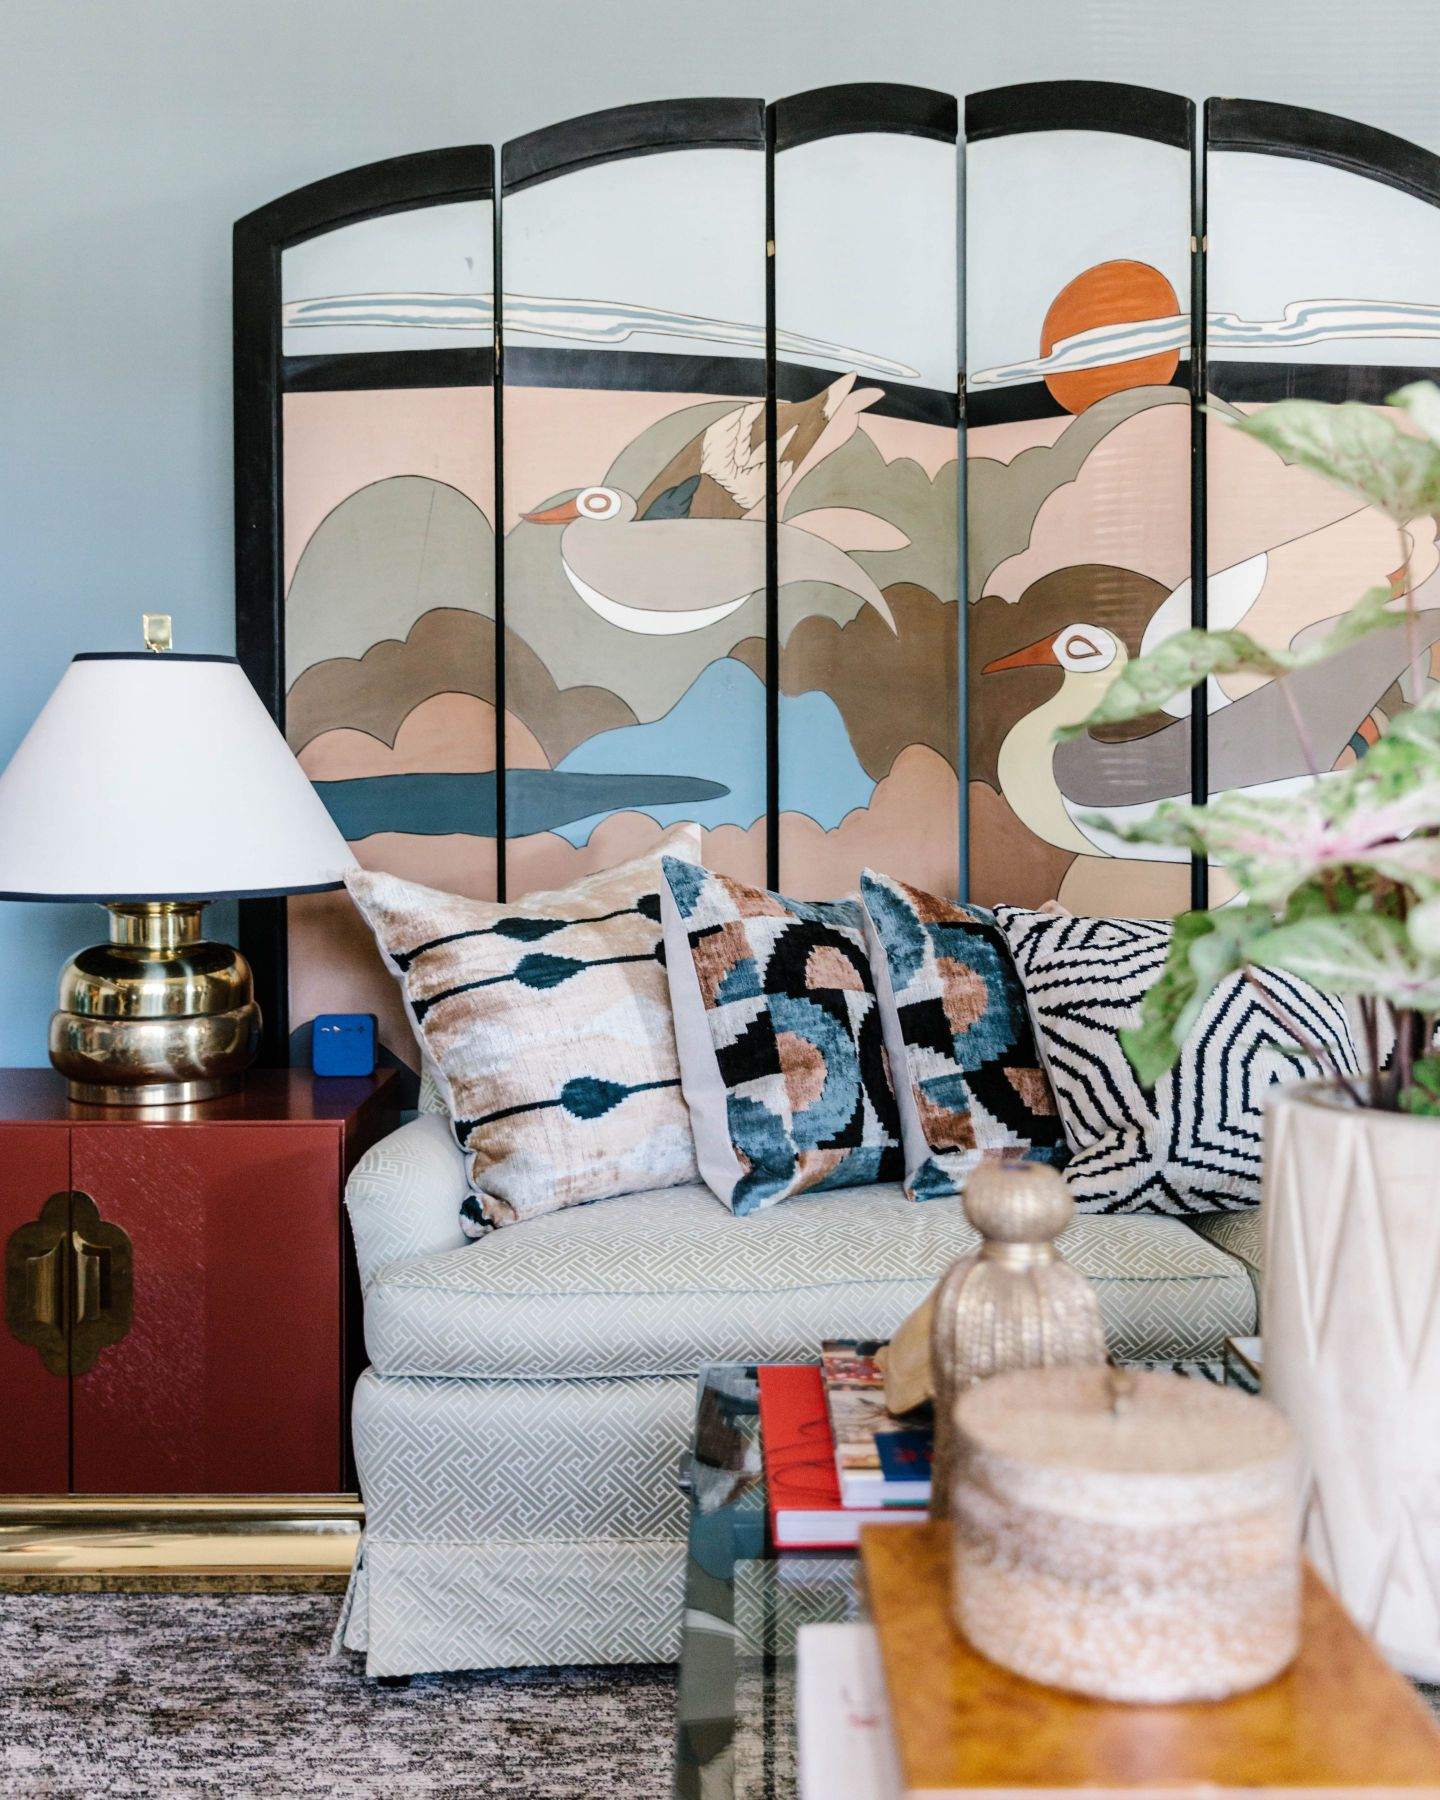 415A2035-1 Black- Owned Vintage Home Decor Boutique Opens in Charlotte, NC